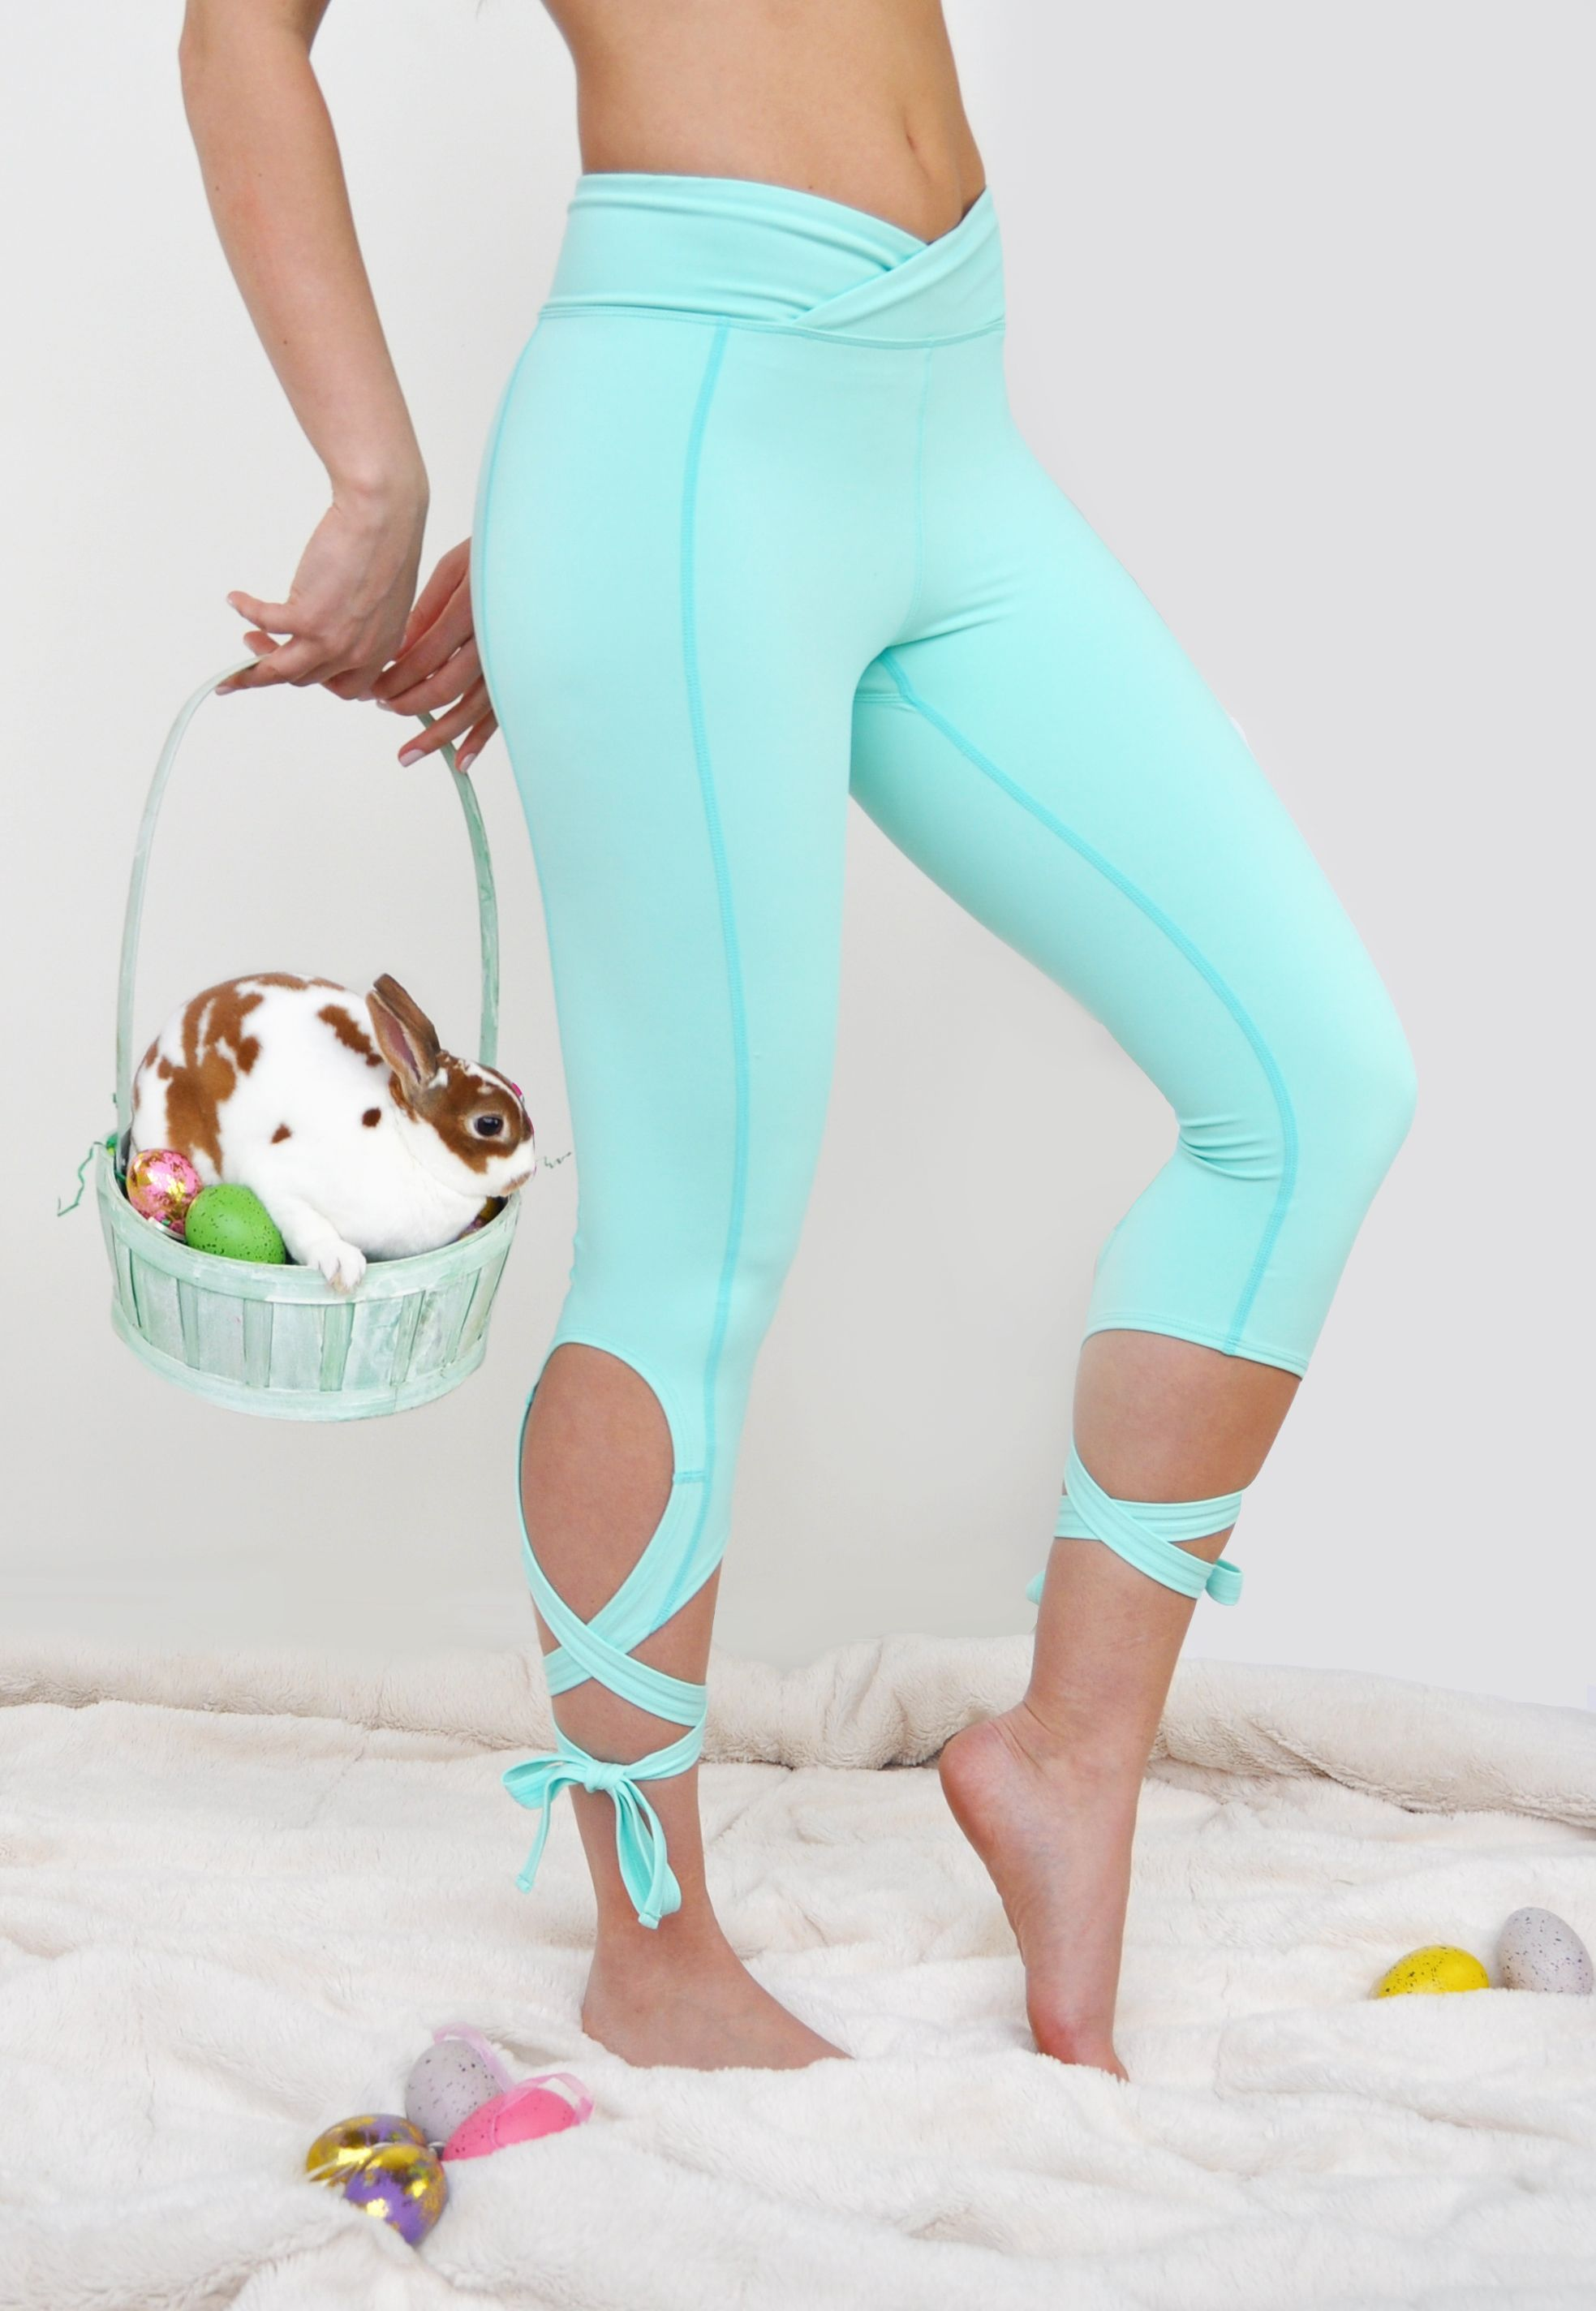 Rabbit Easter Modern Yoga Tights Short Running Pants Workout